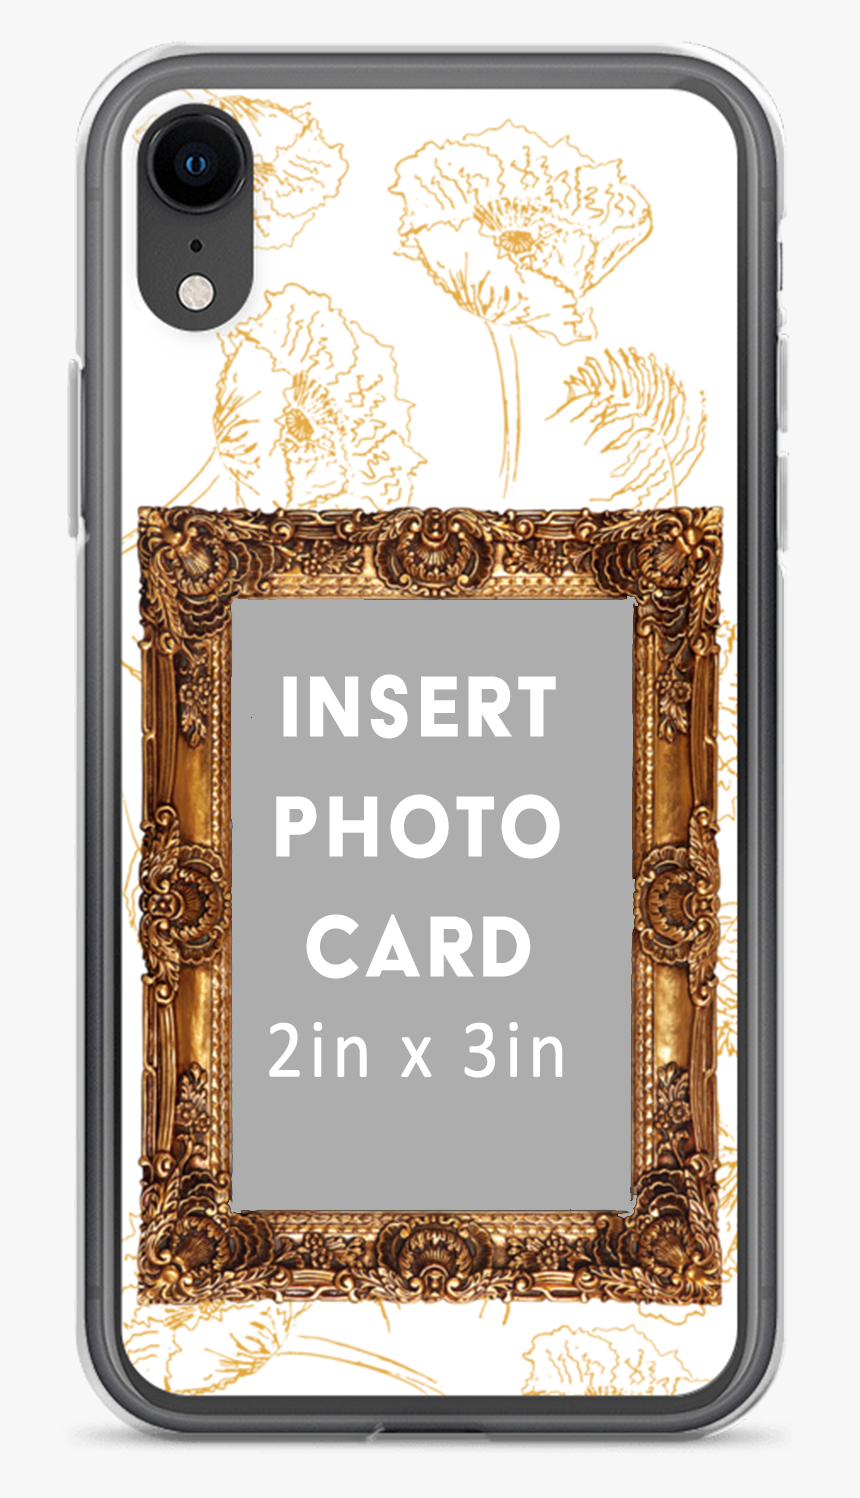 742 7422417 photocard iphone case data zoom cdn mobile phone